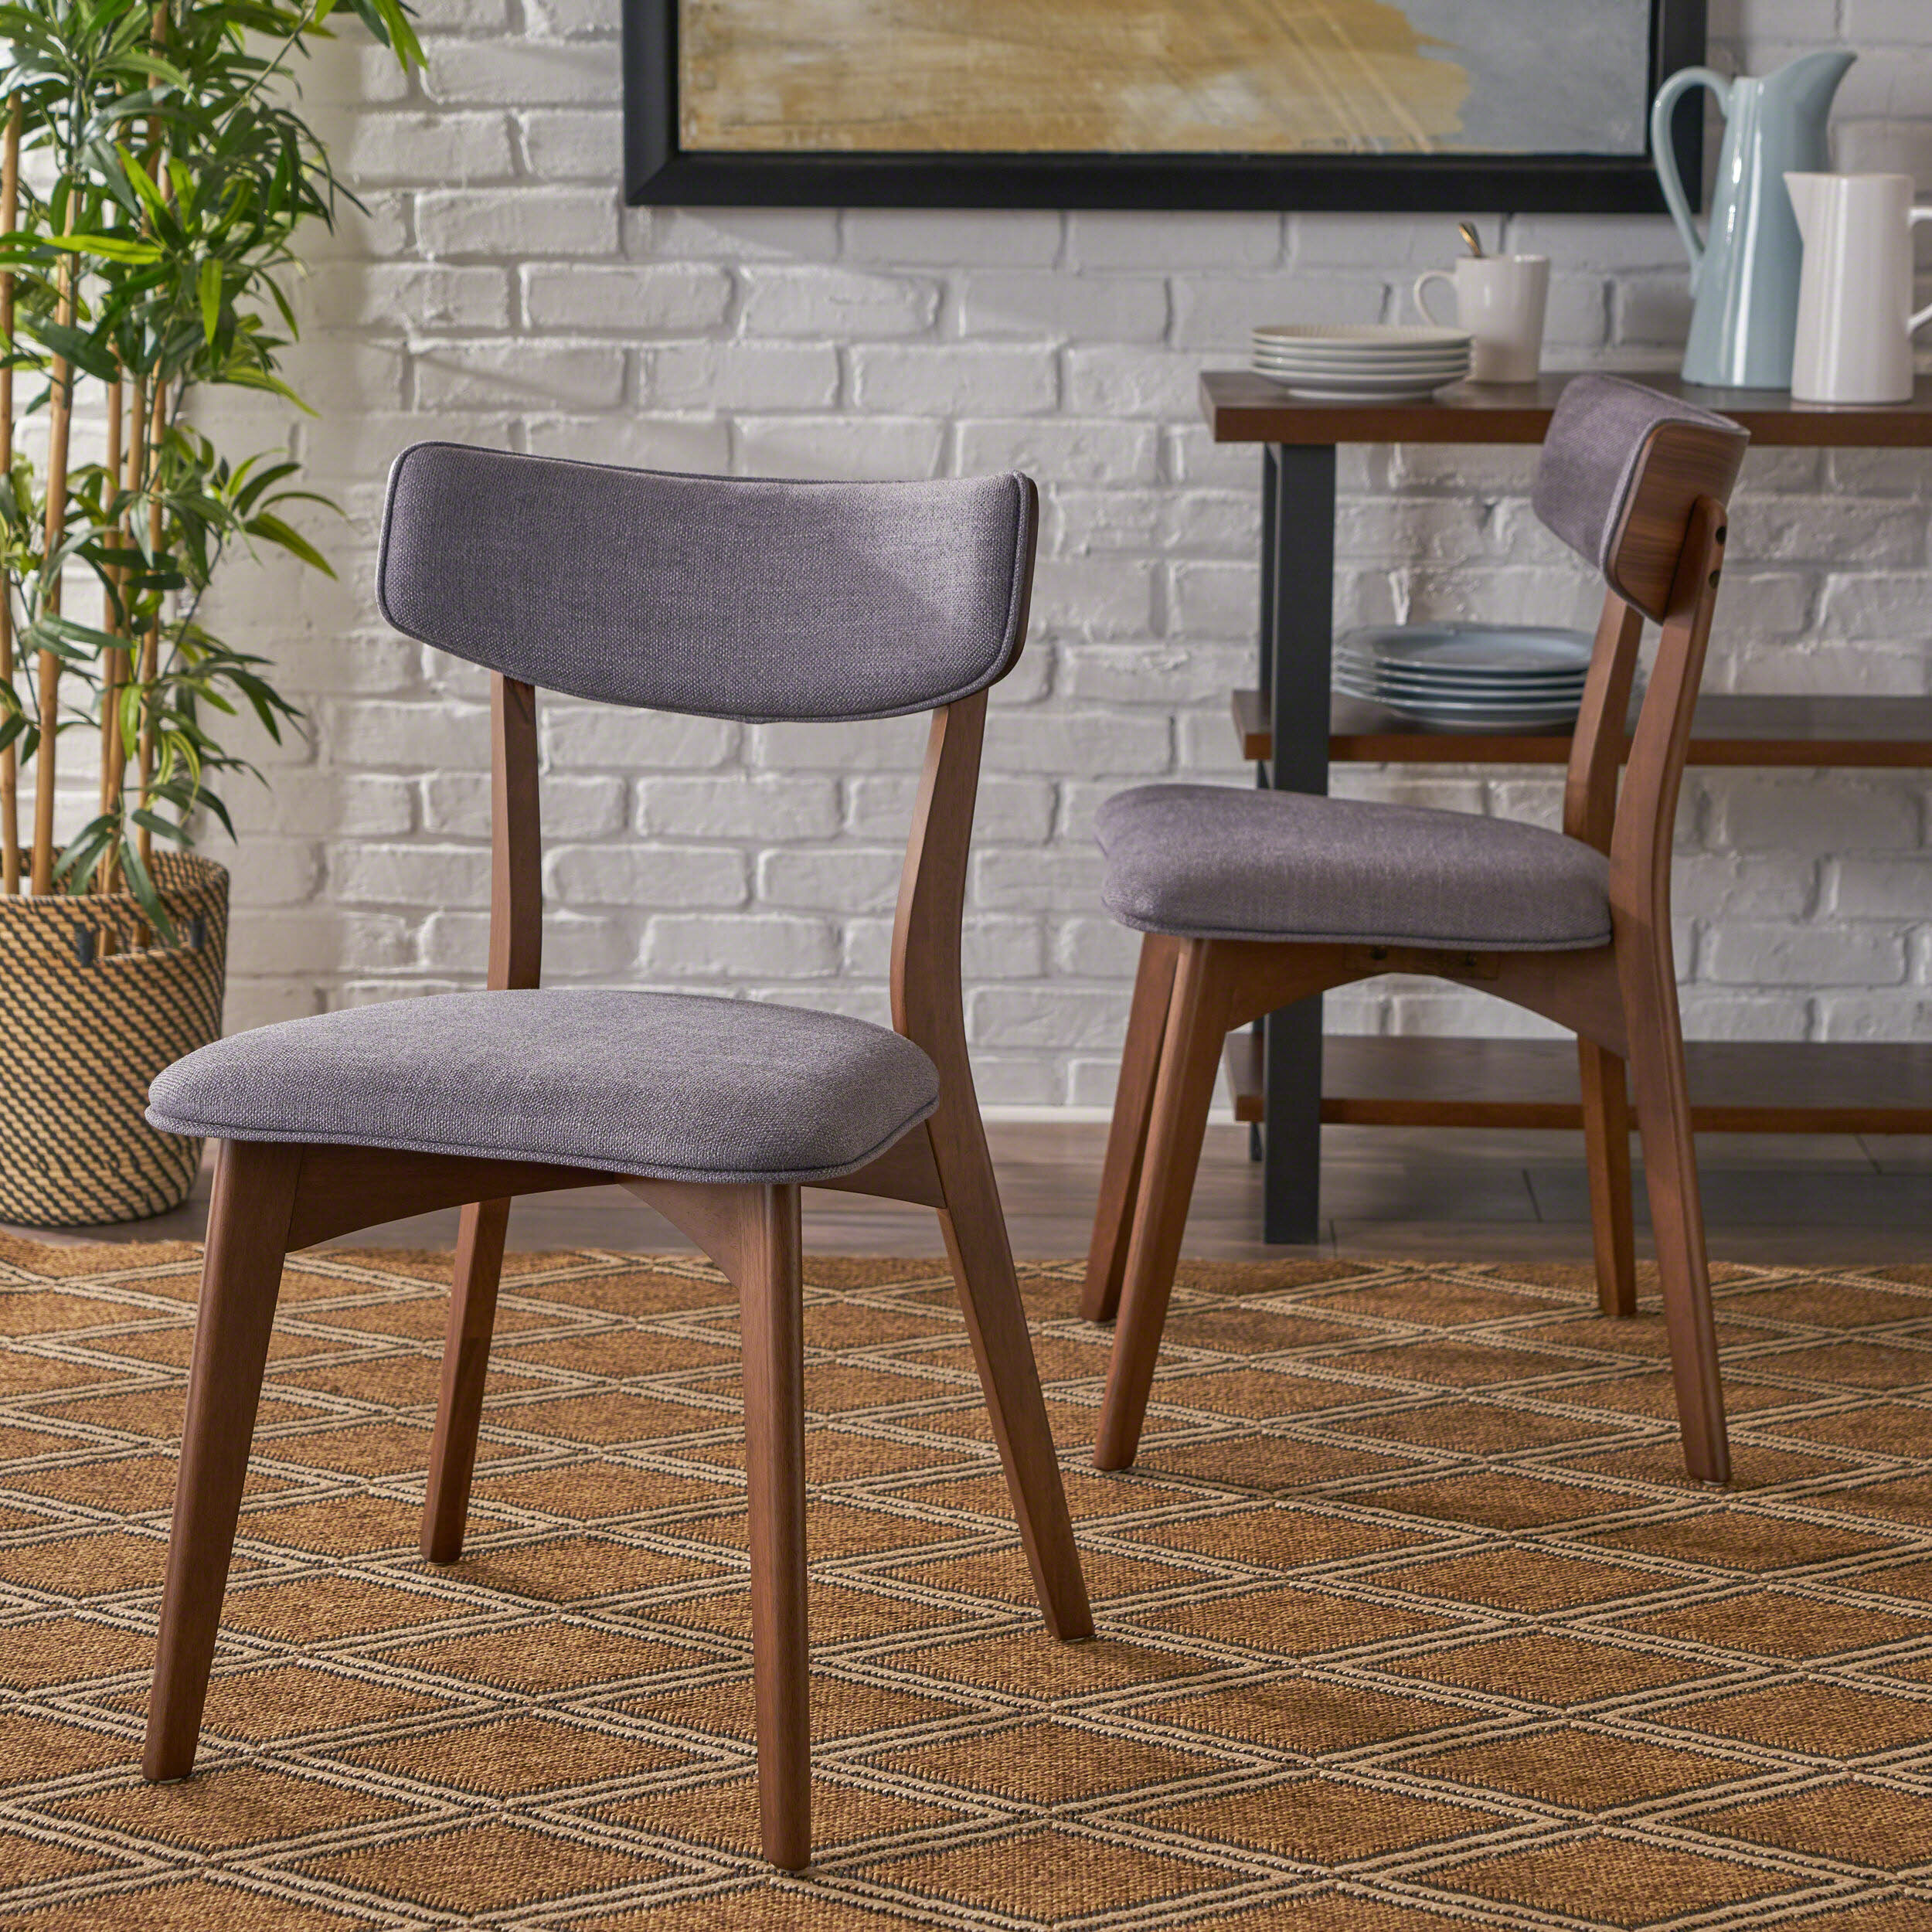 Hoopes Mid Century Modern Upholstered Dining Chair